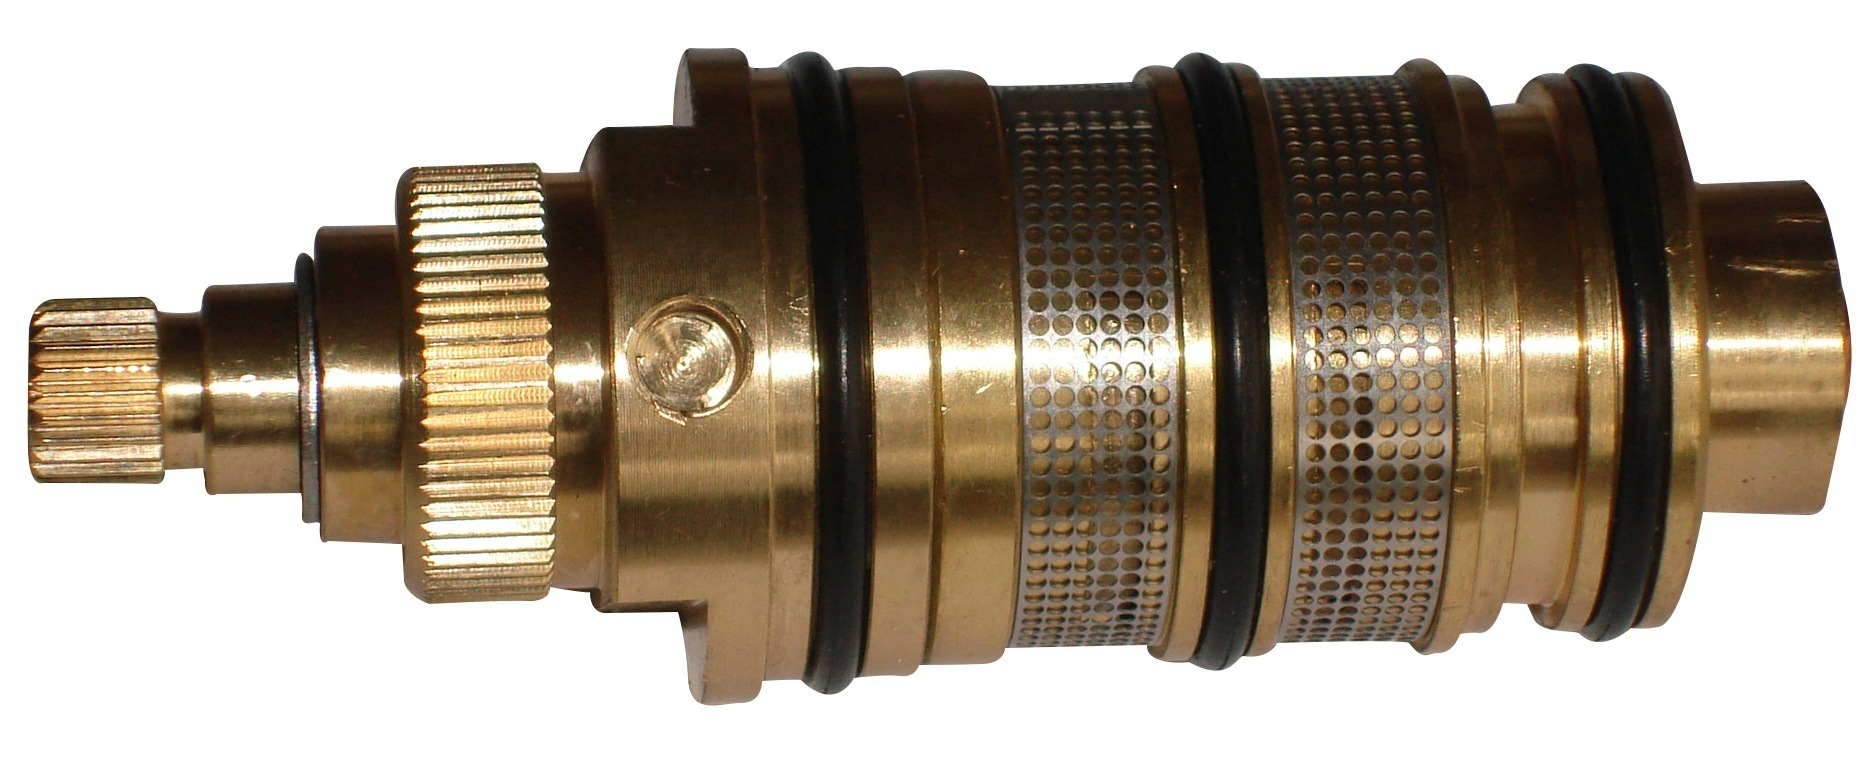 Spare Thermostatic Shower Cartridge for bath mixer /& various shower valves